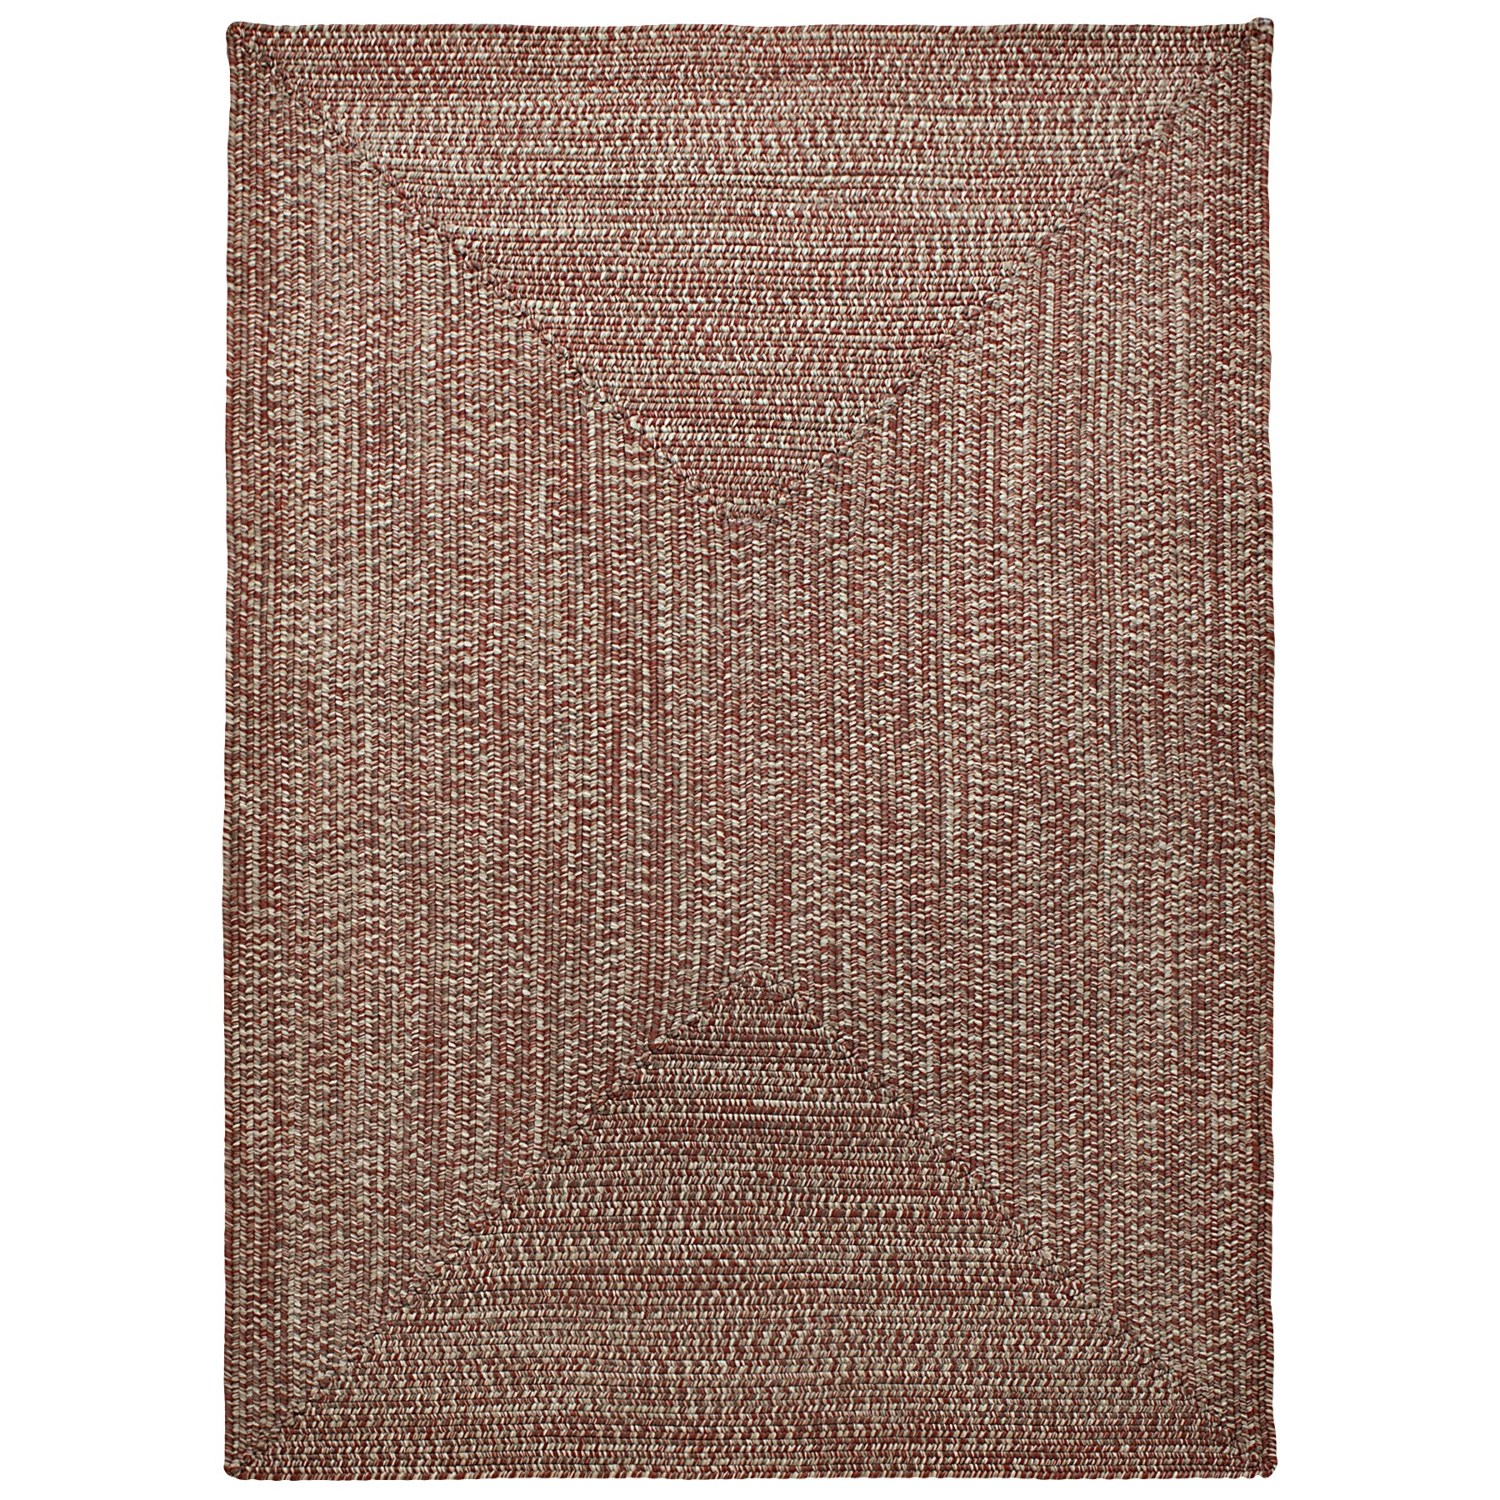 Colonial Mills Braided Indoor Outdoor Area Rug 8x10